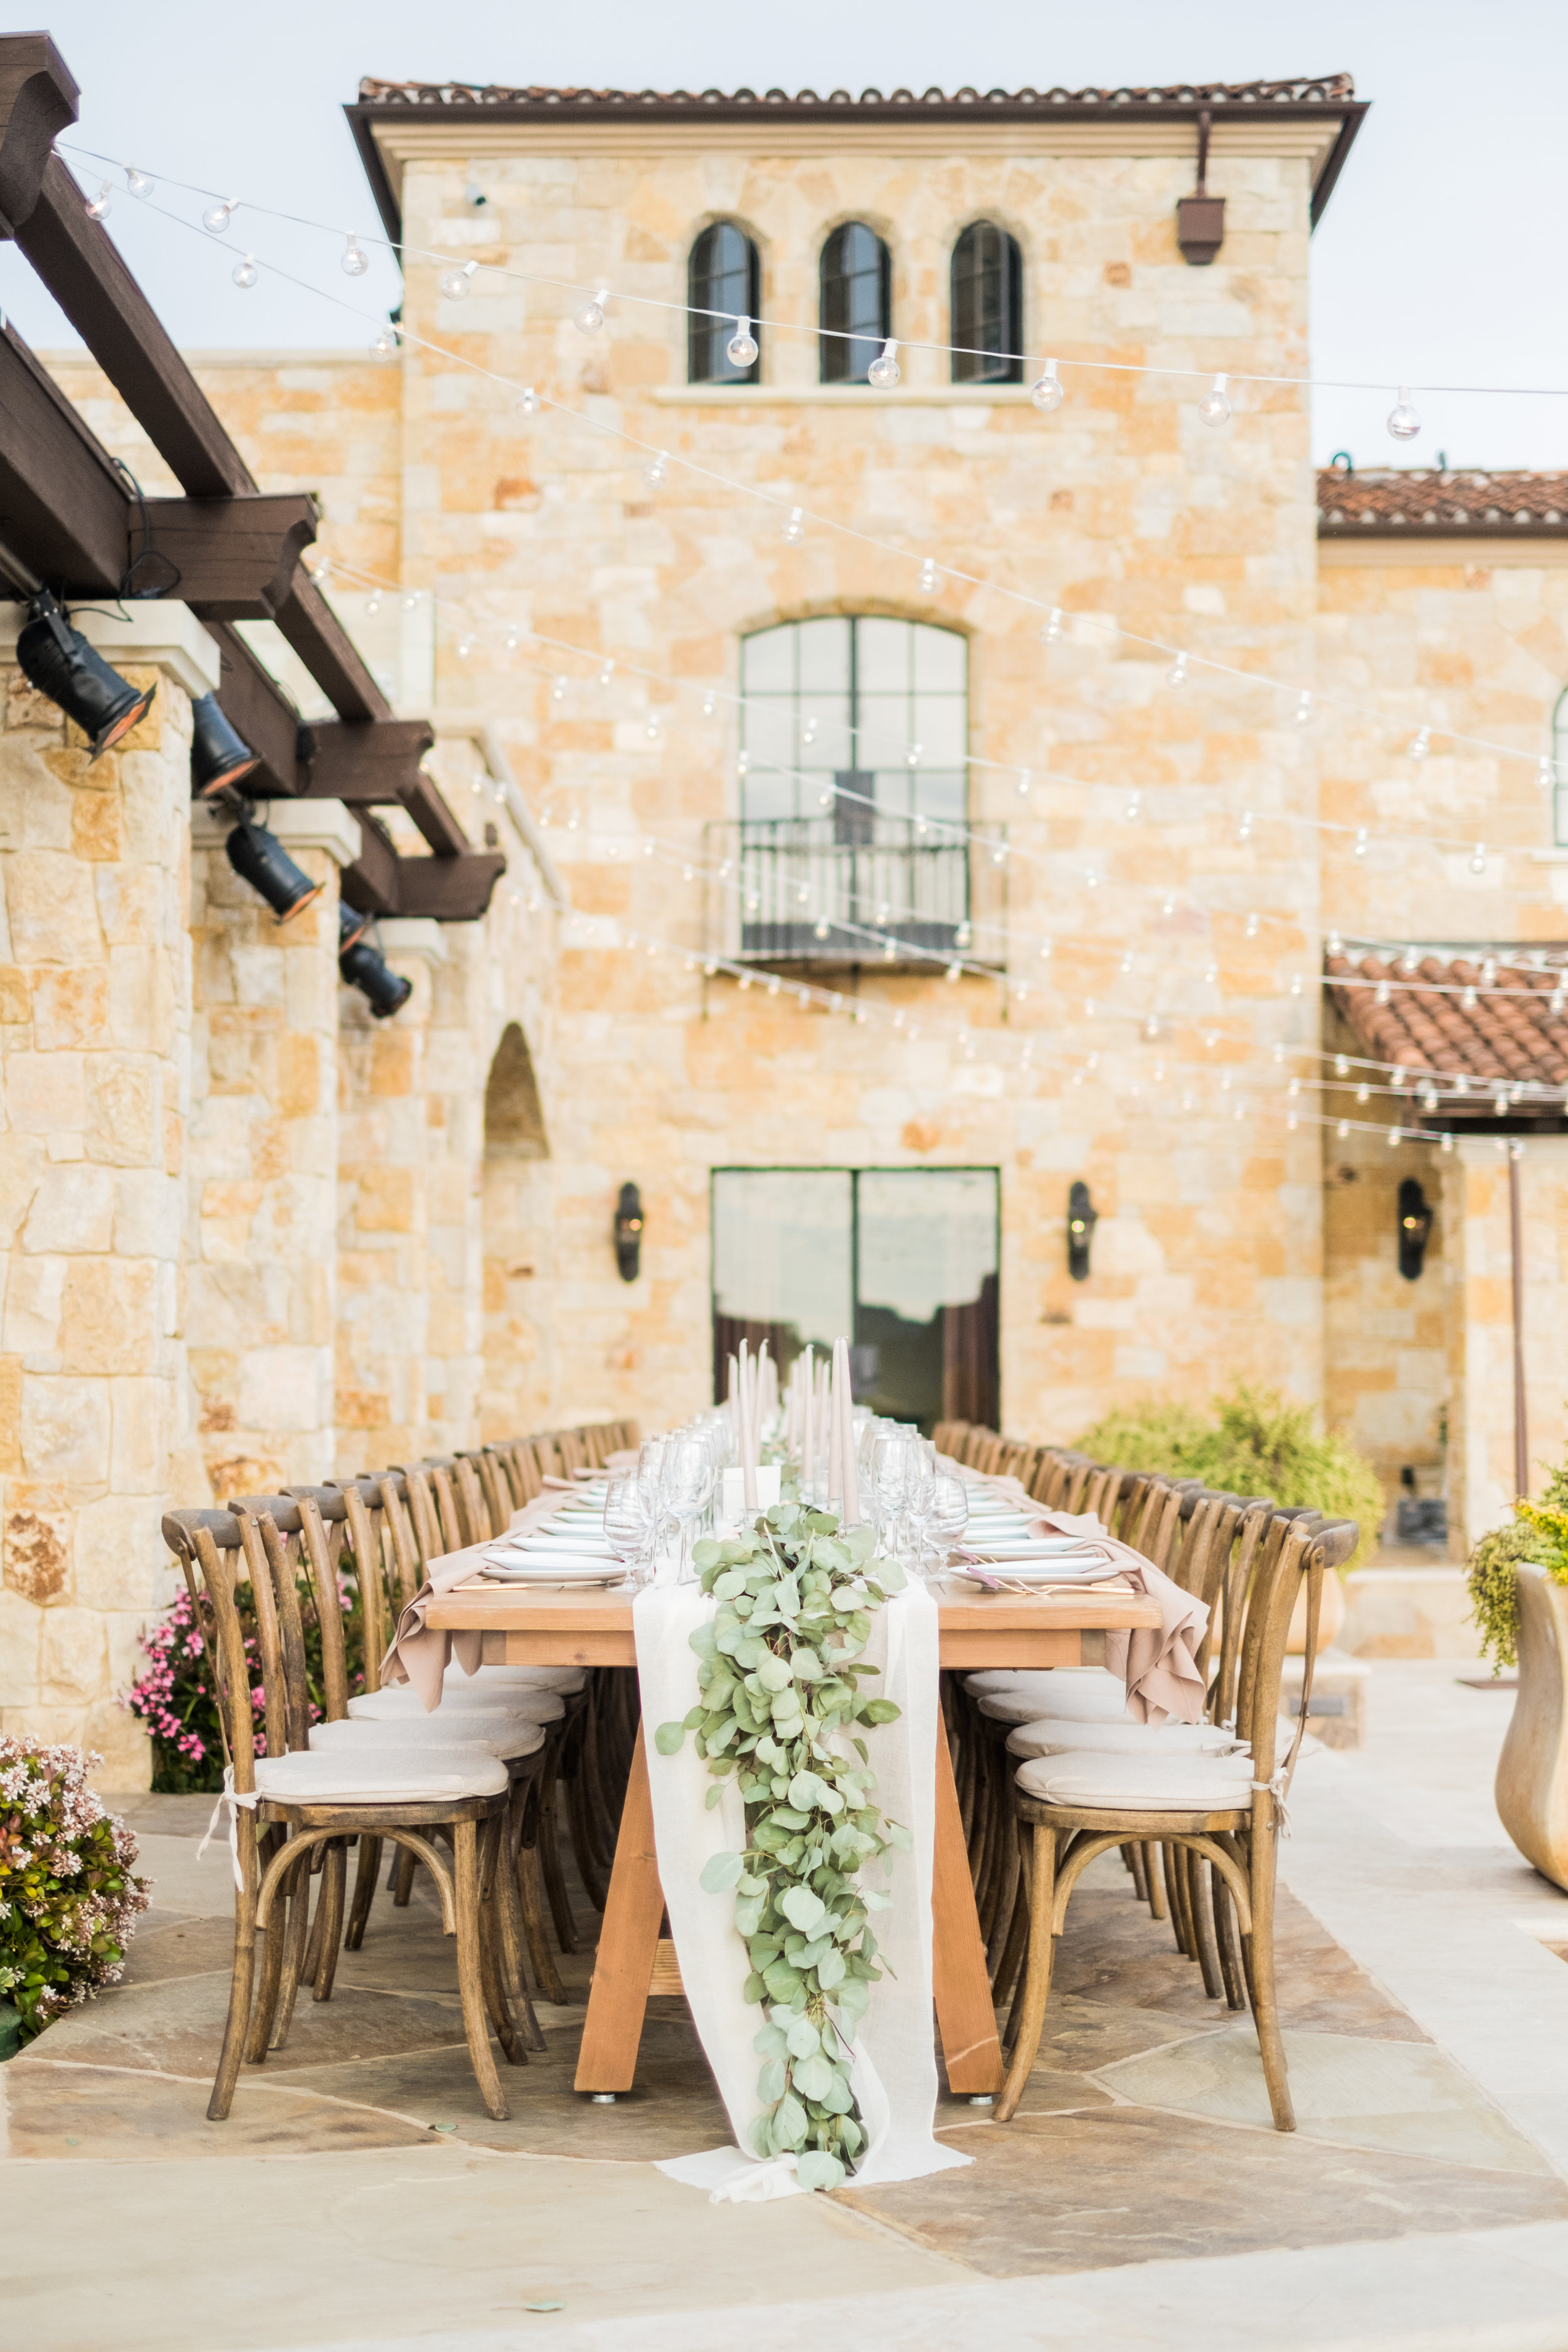 Spring Wedding at Romantic Hilltop Vineyard Malibu Rocky Oaks Sally Pinera Finding Flora Garland Greenery Kings Table Reception Decor So Happi Together